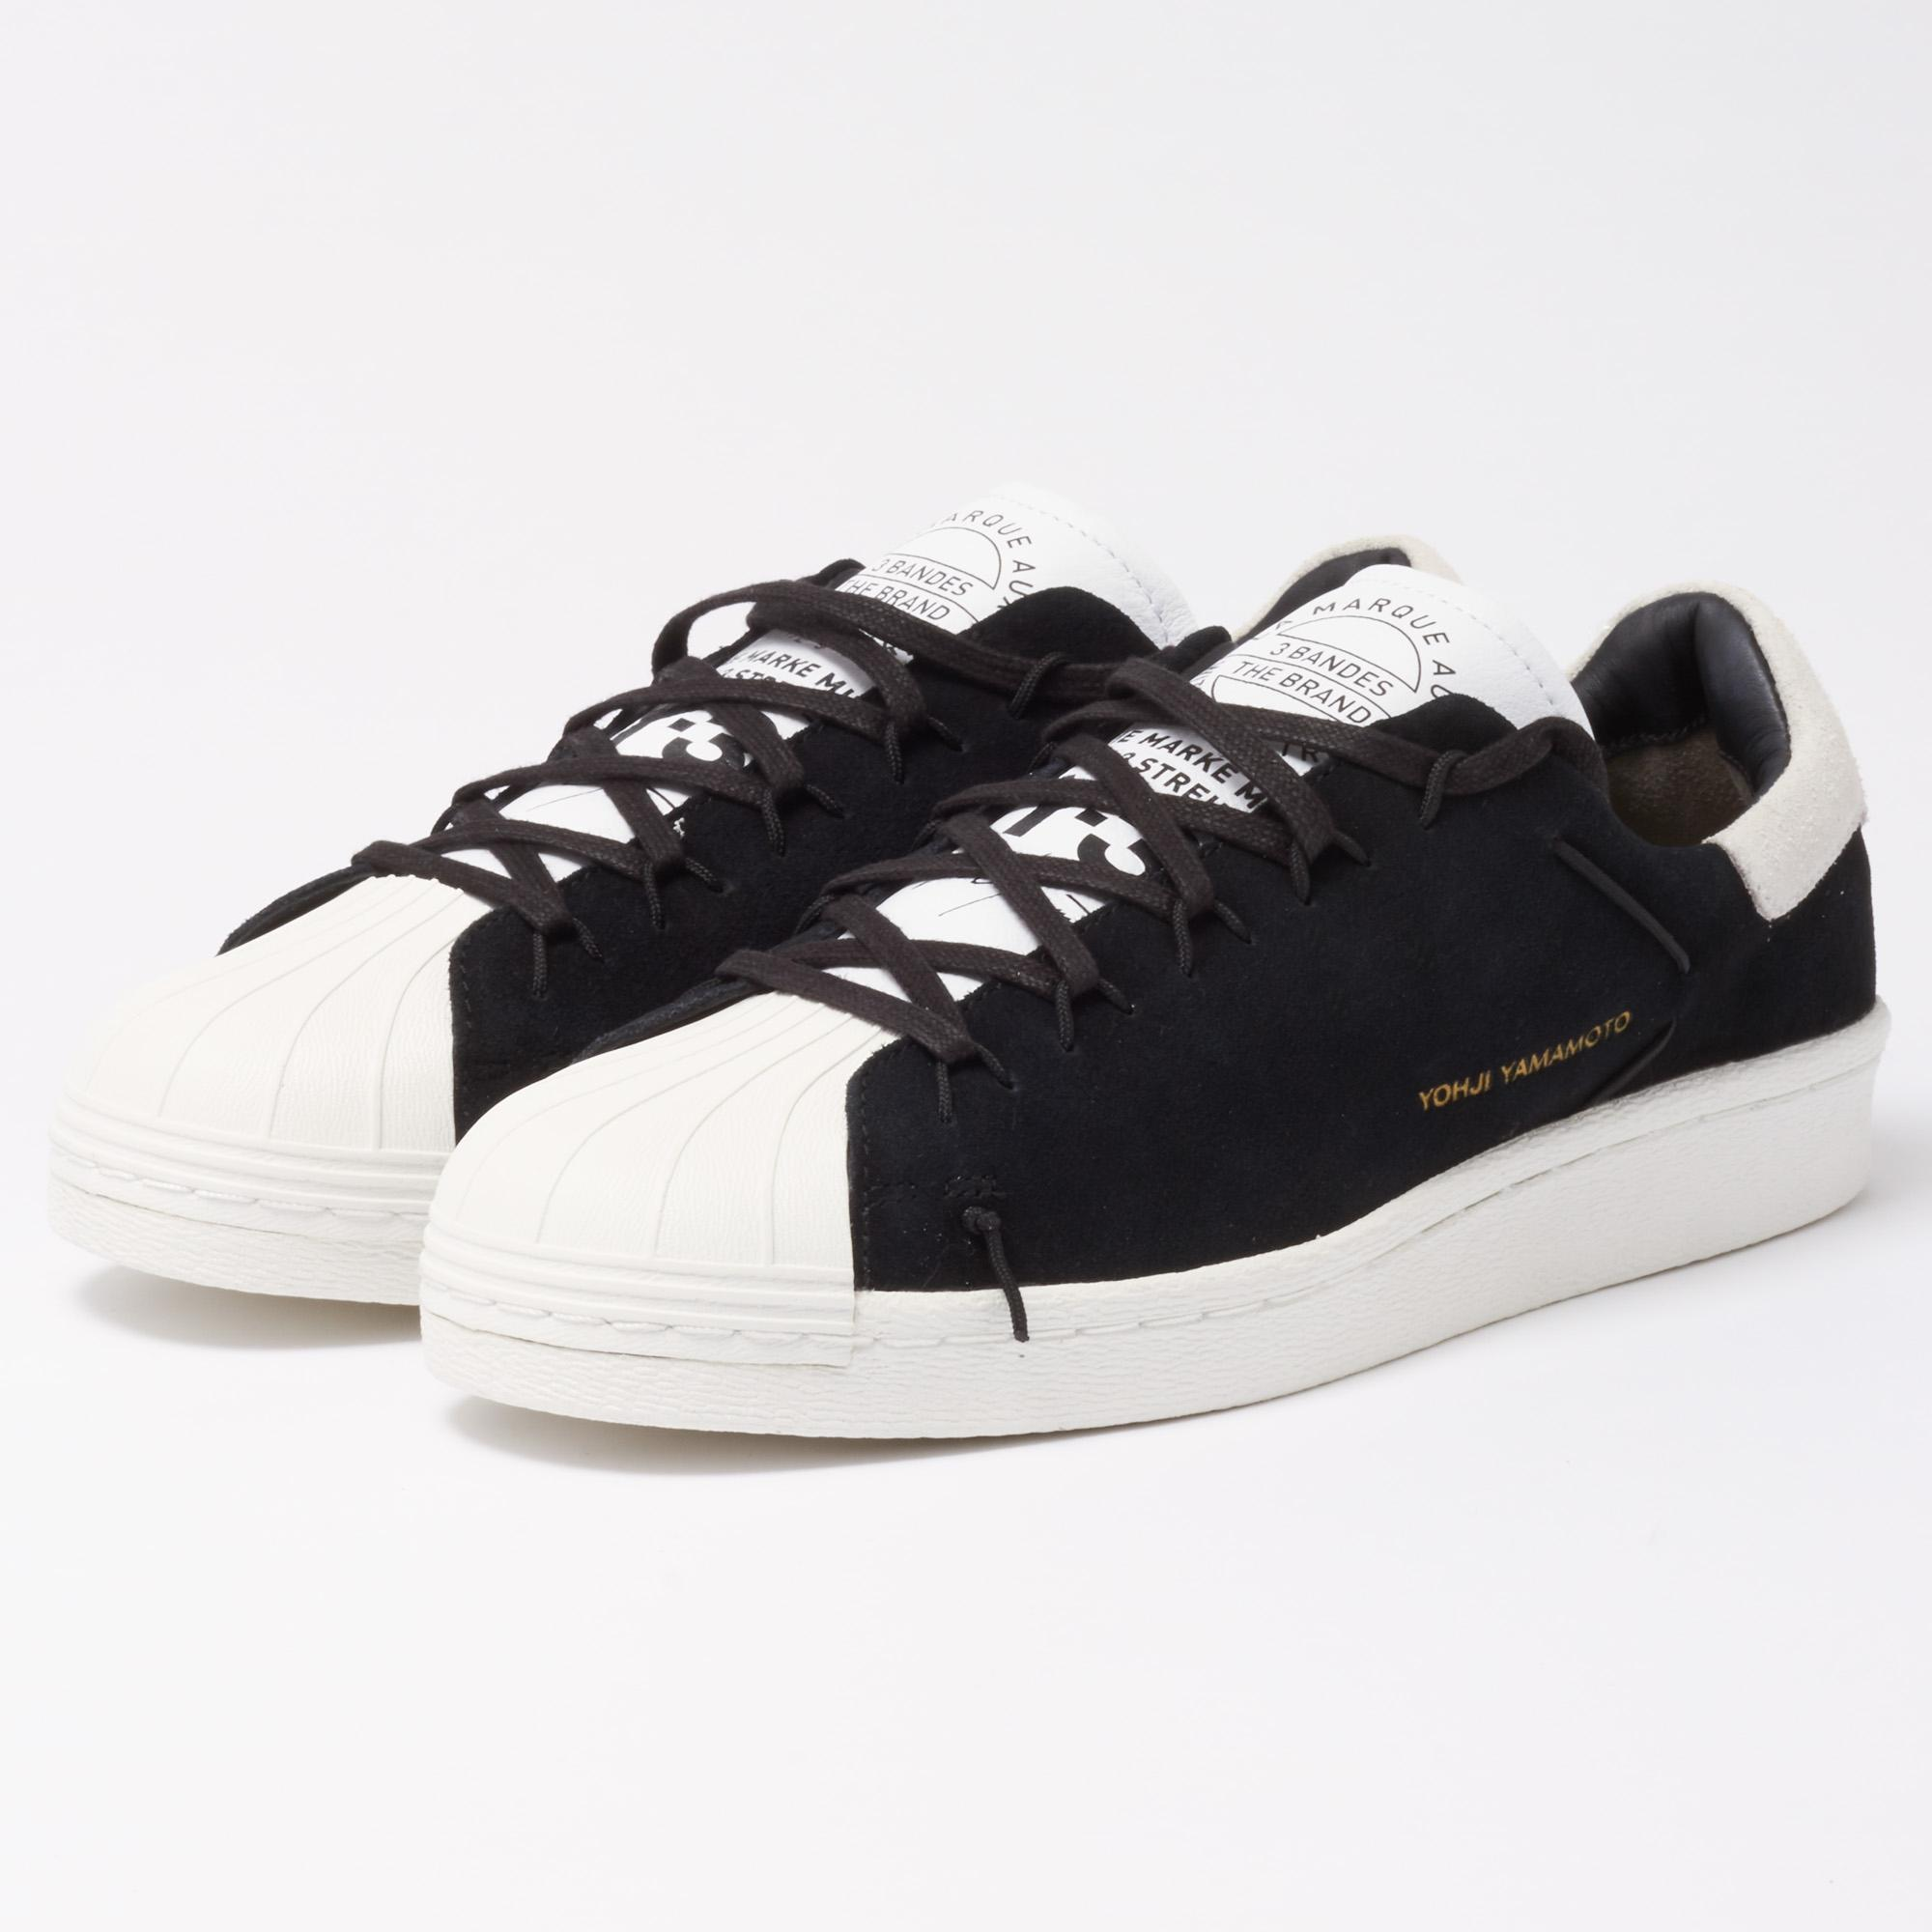 Y-3 Super Knot Suede Sneakers sSX5Vg3